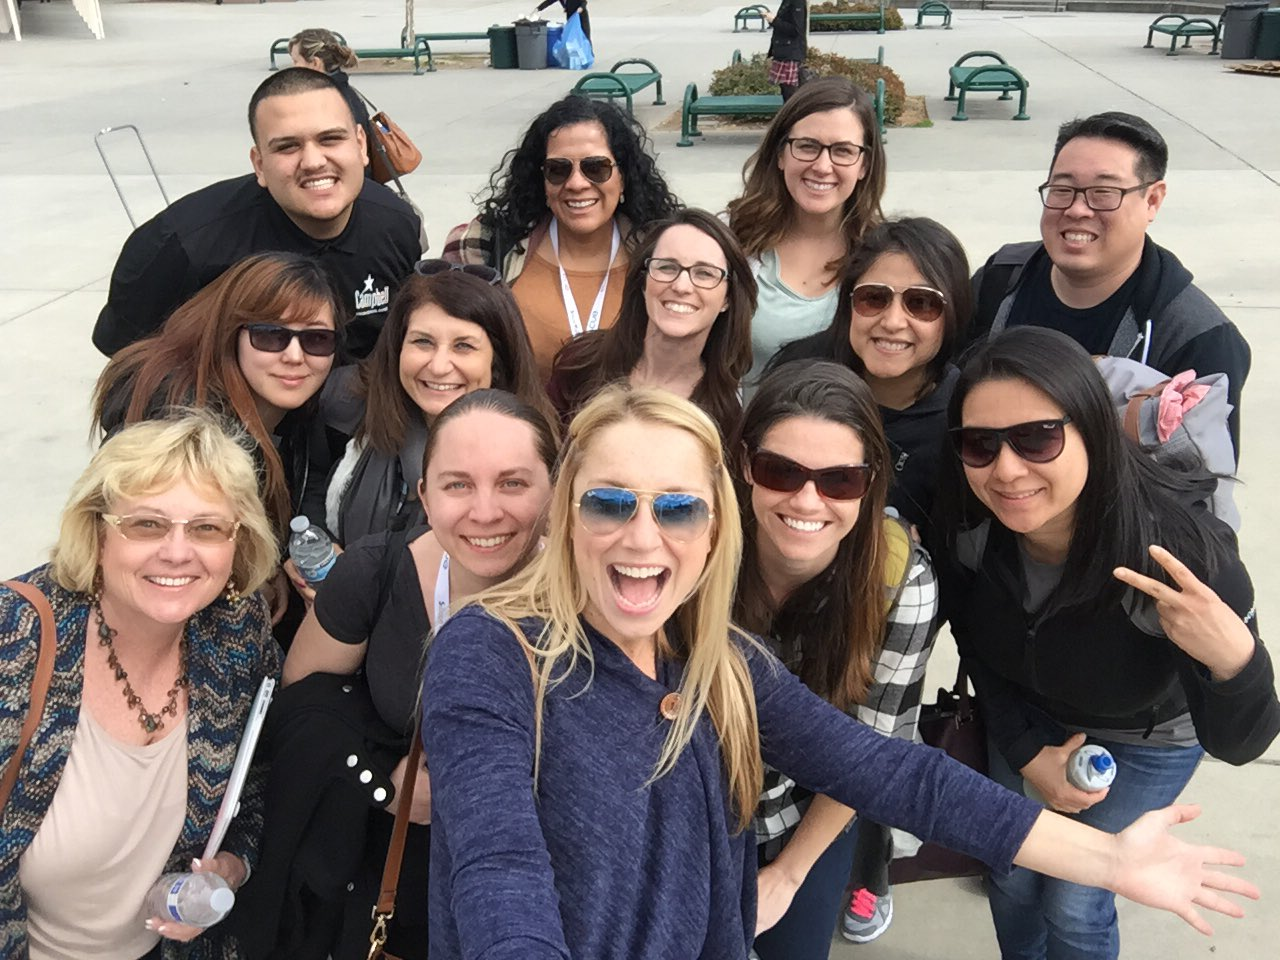 Some UHmazing #CUSDrockstar educators learning on a Saturday! Working hard for our @campbellusd Ss!! #svcue #cue https://t.co/kOEfoM6Wu7